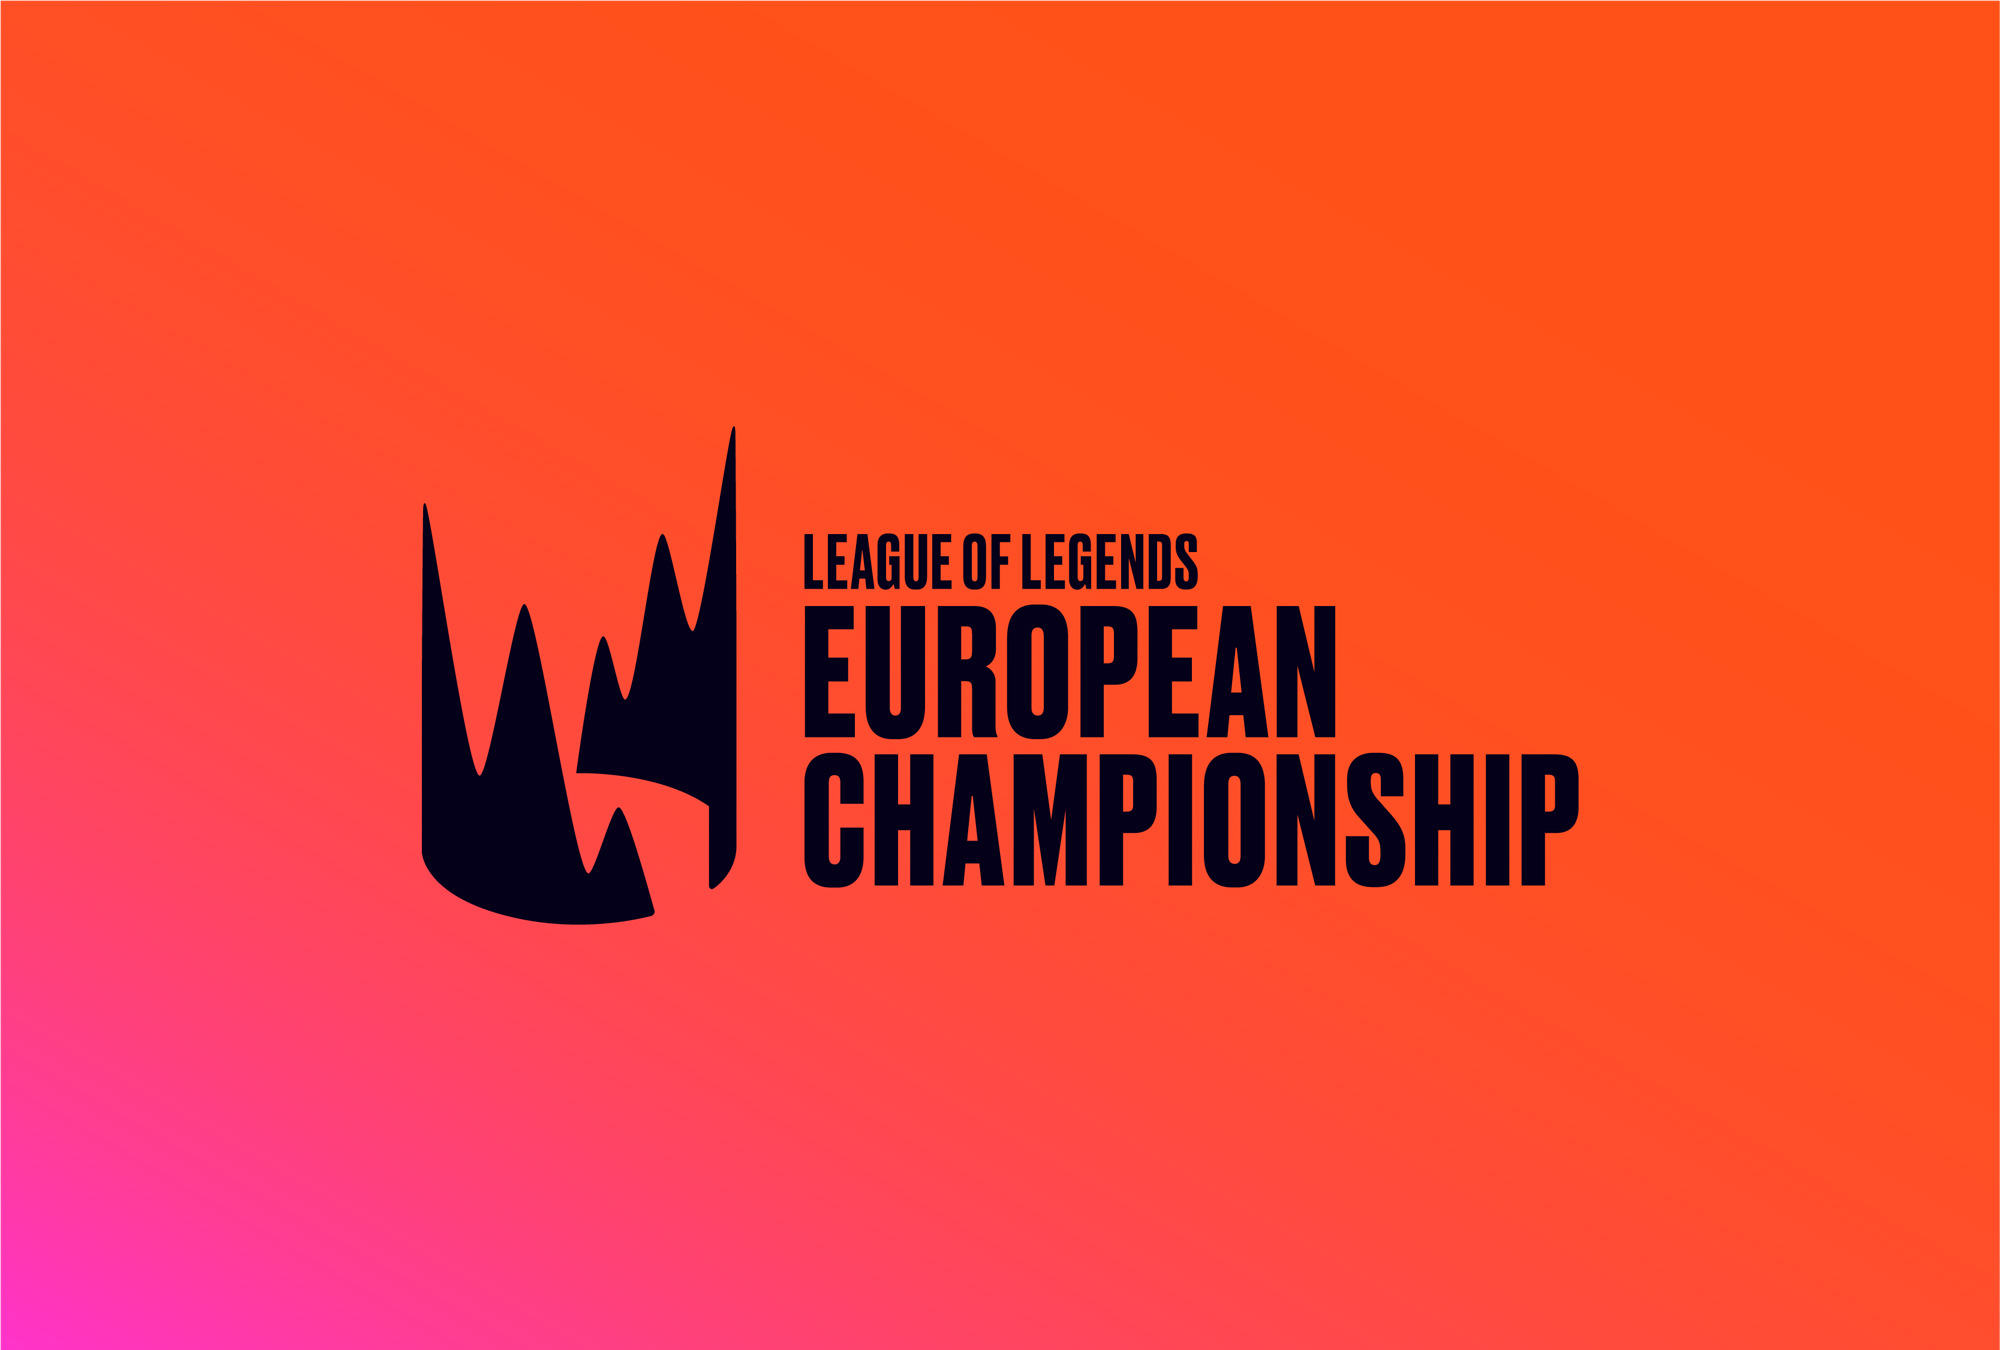 New Logo and Identity for League of Legends European Championship by DesignStudio